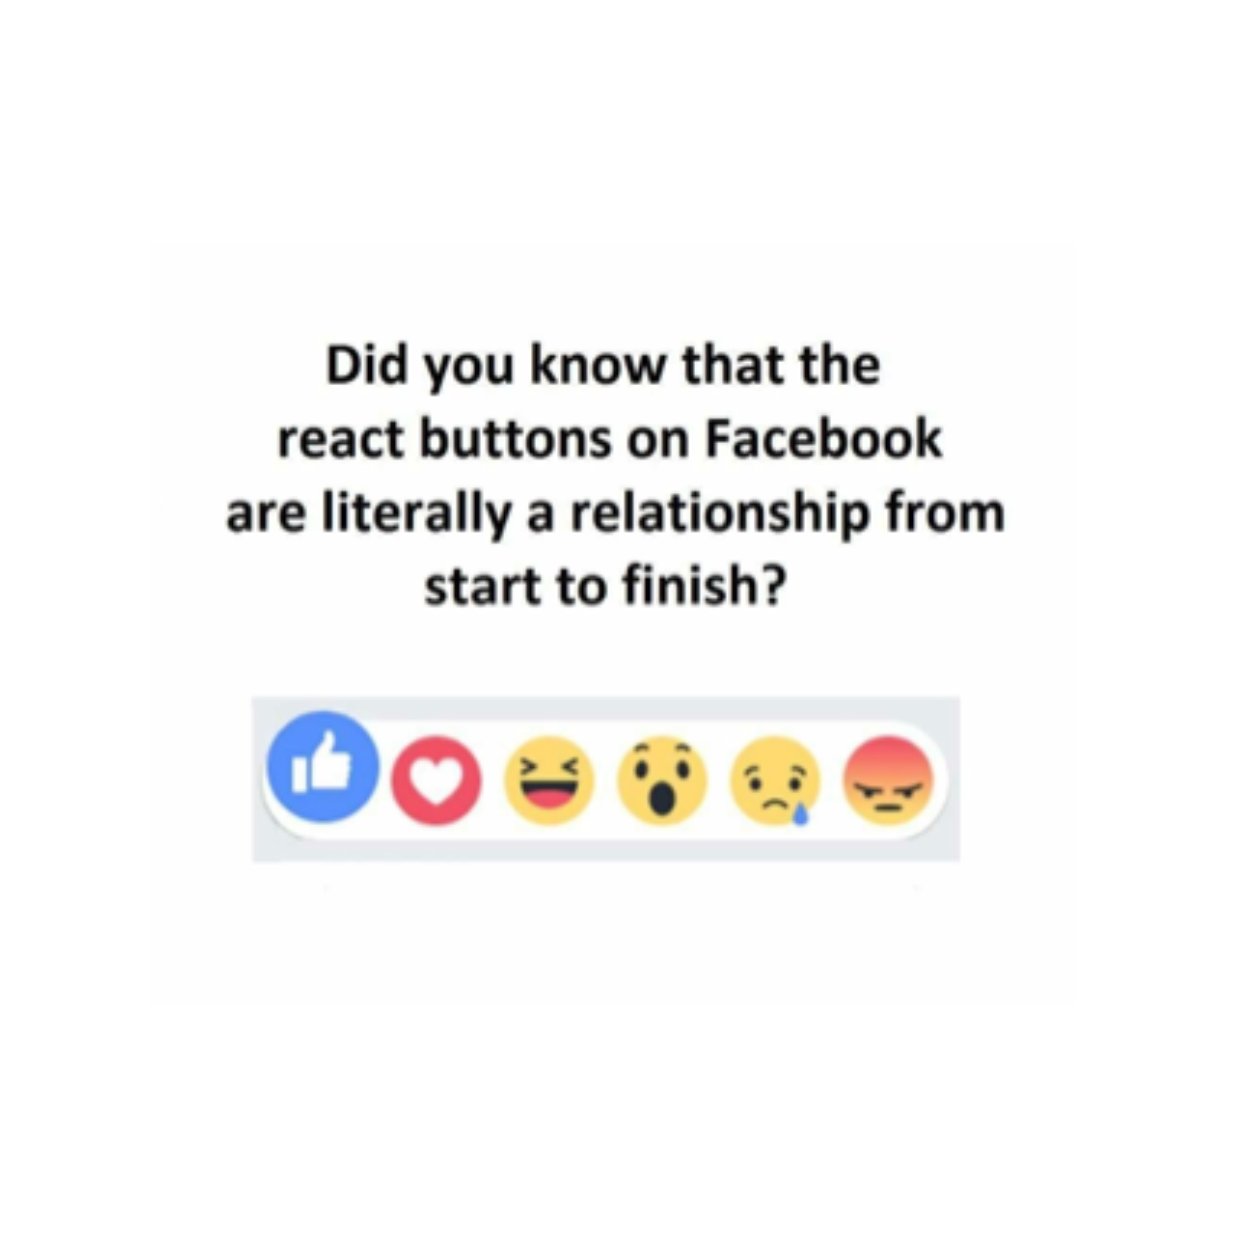 React buttons on facebook are literally a relationship from start to finish.